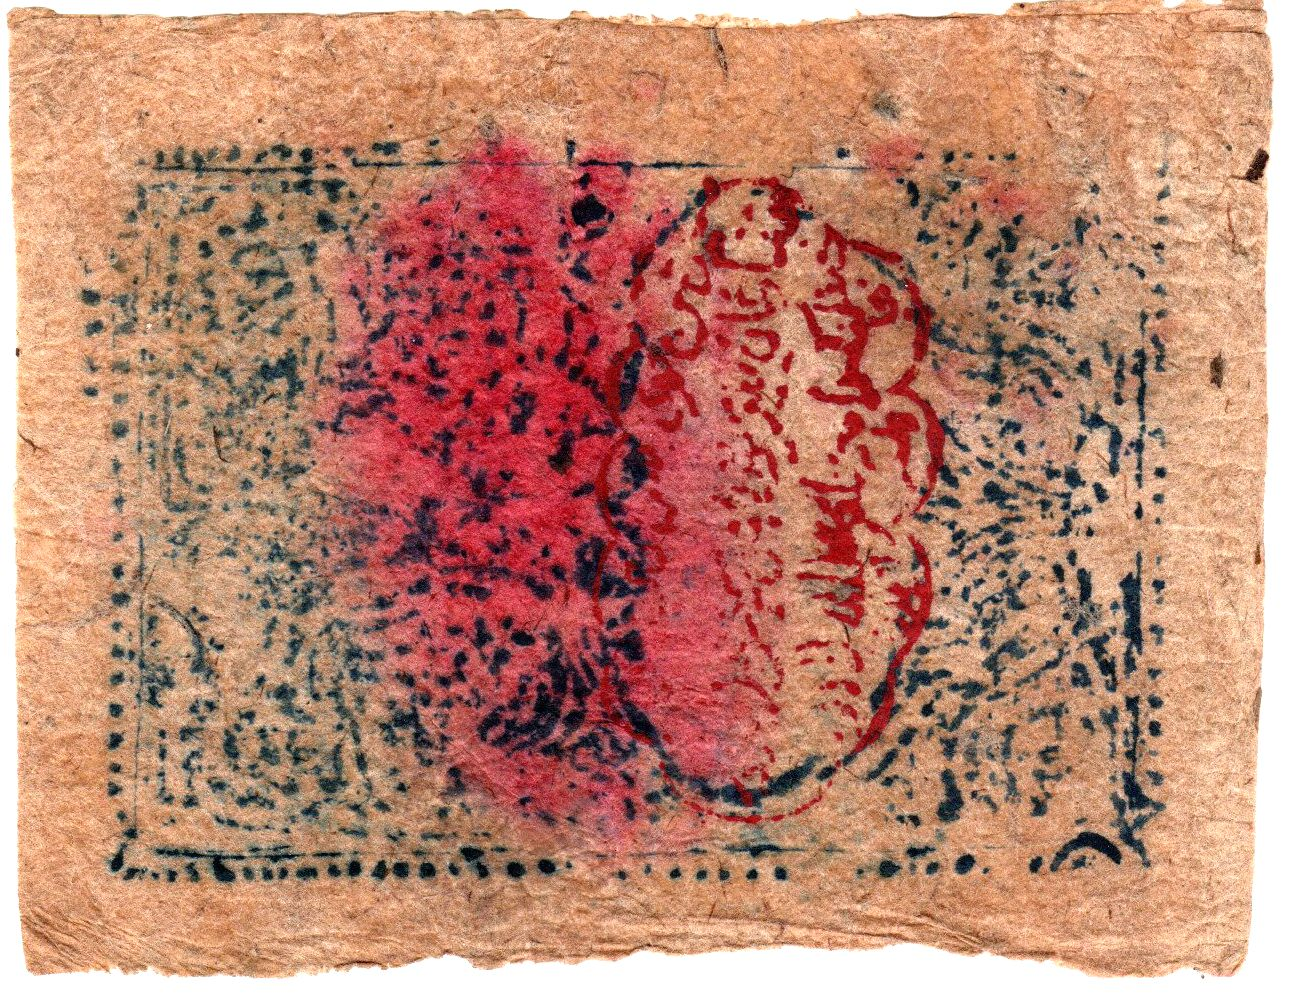 XJ0140, SinKiang Special Banknote, Printed on Cloth Fabric, 1930's